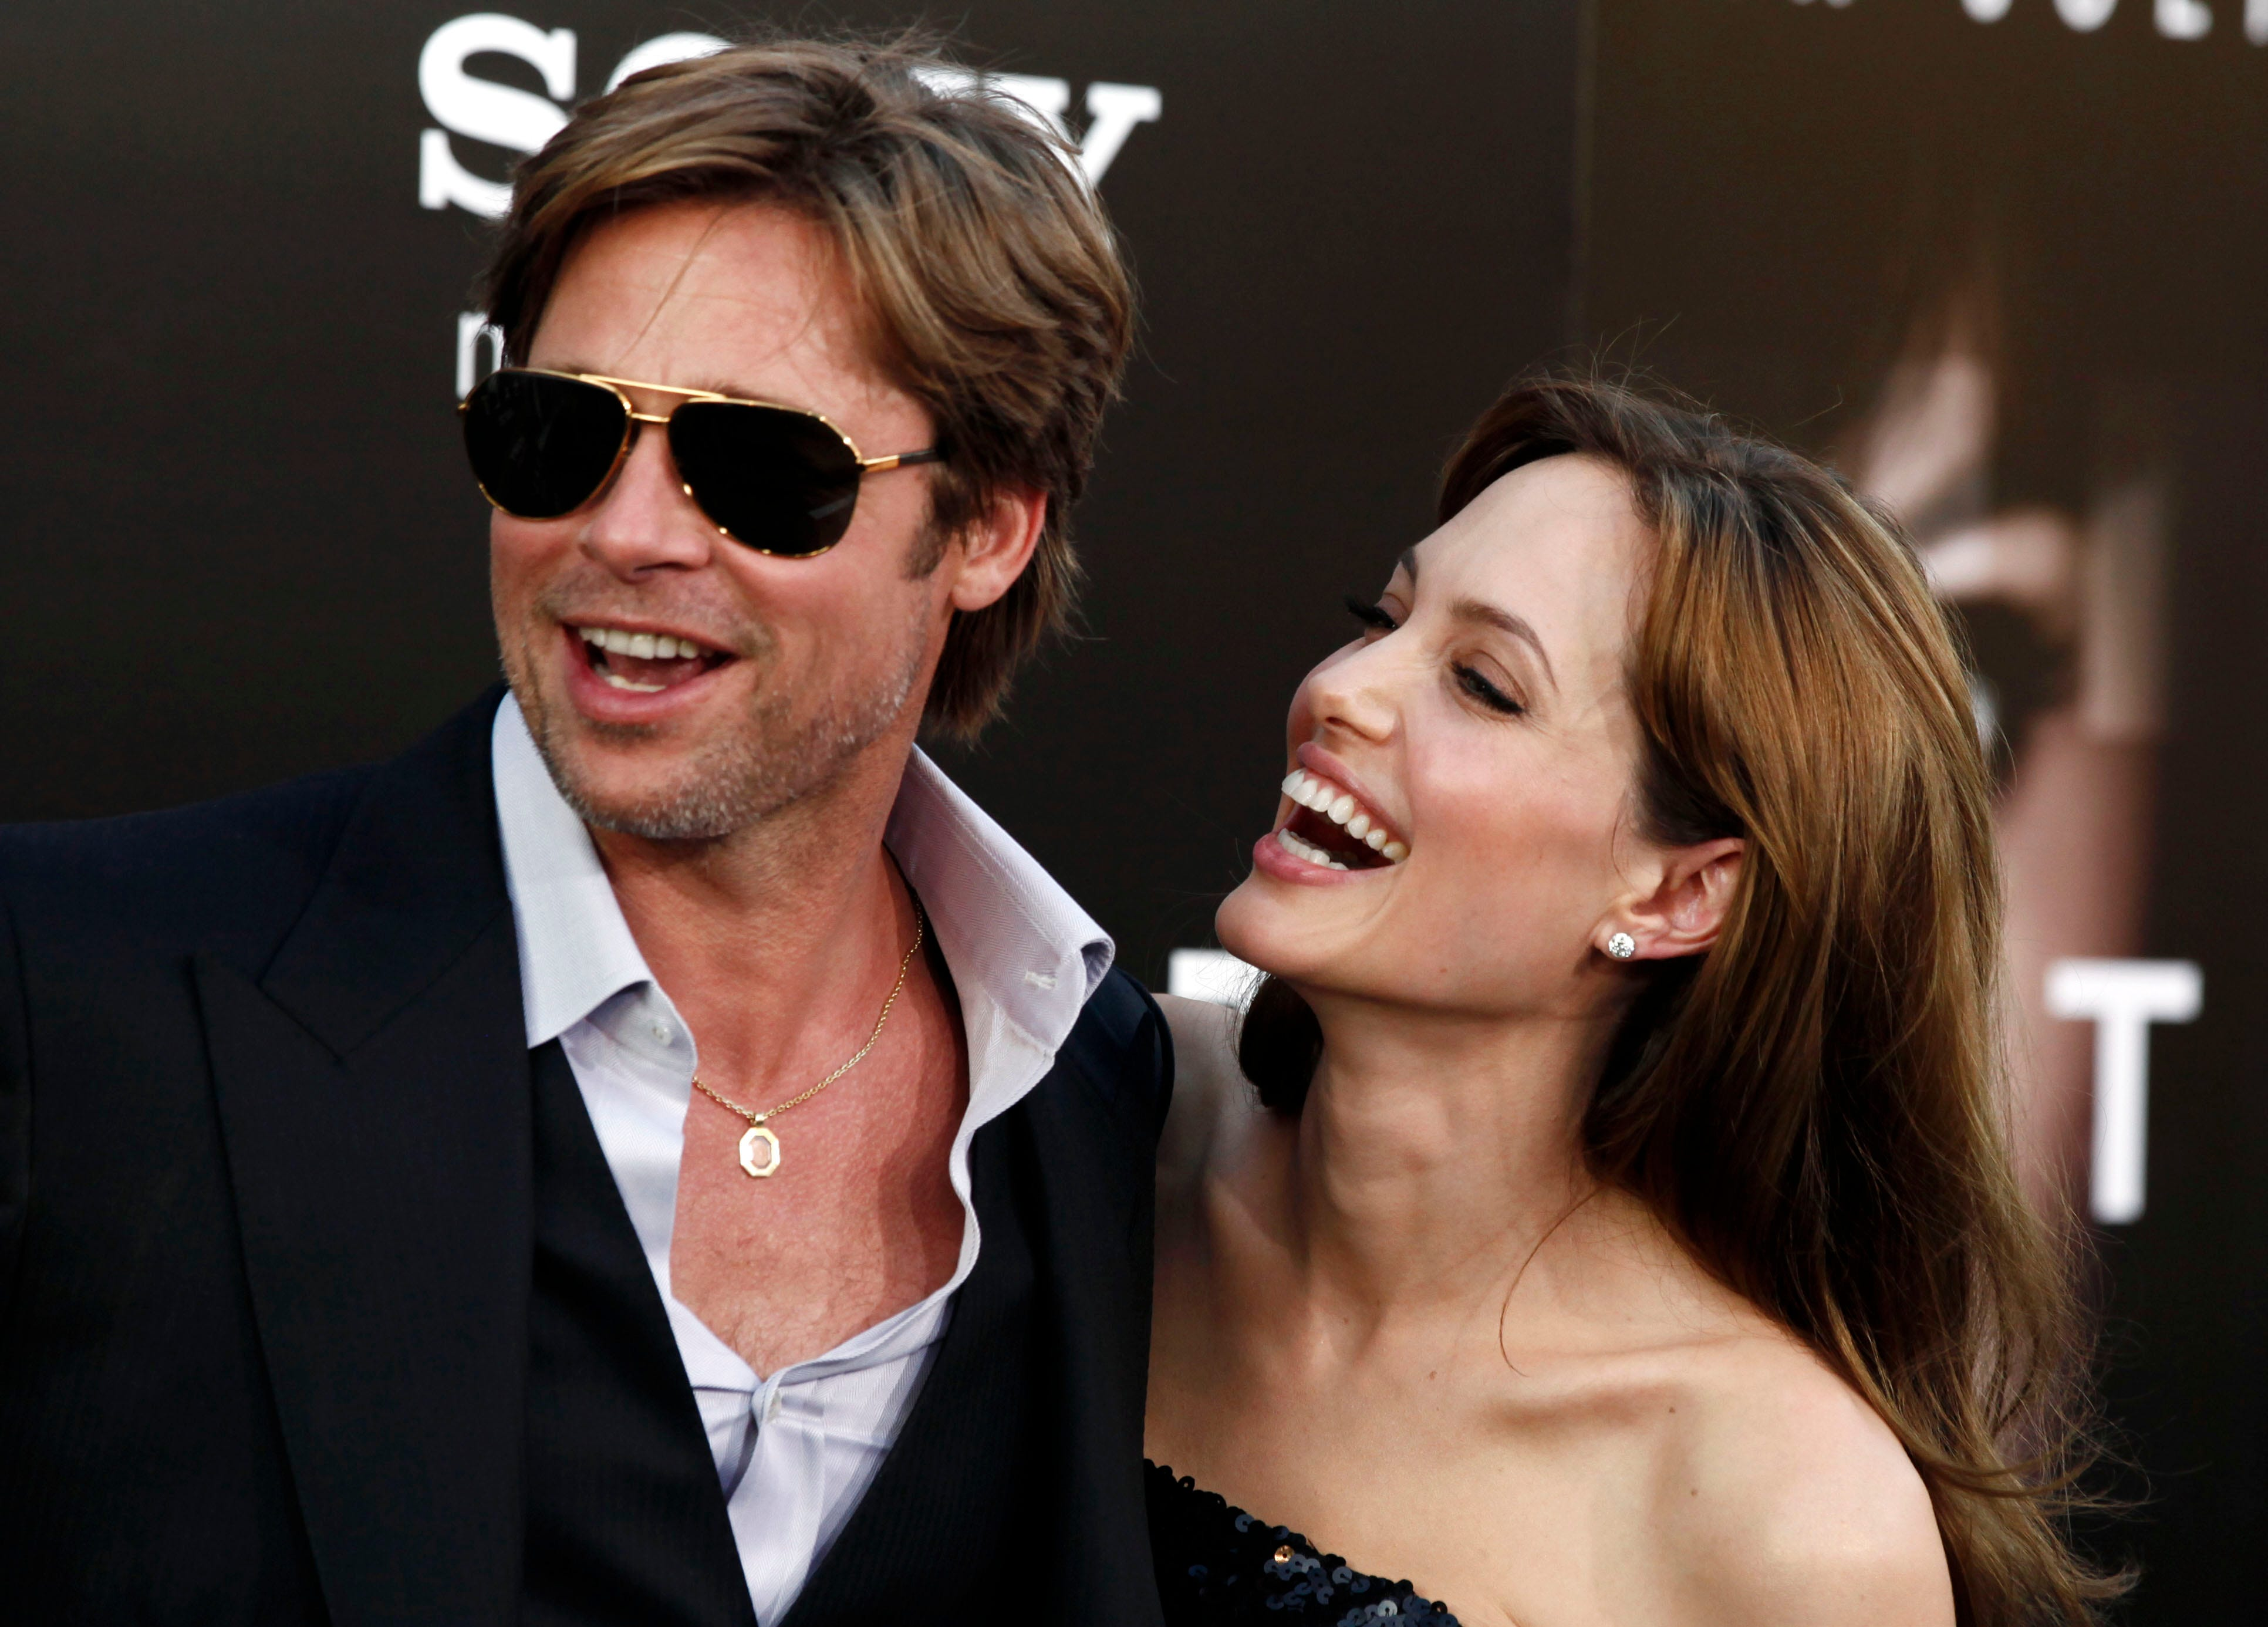 Timeline: Pitt and Jolie's 12-year relationship